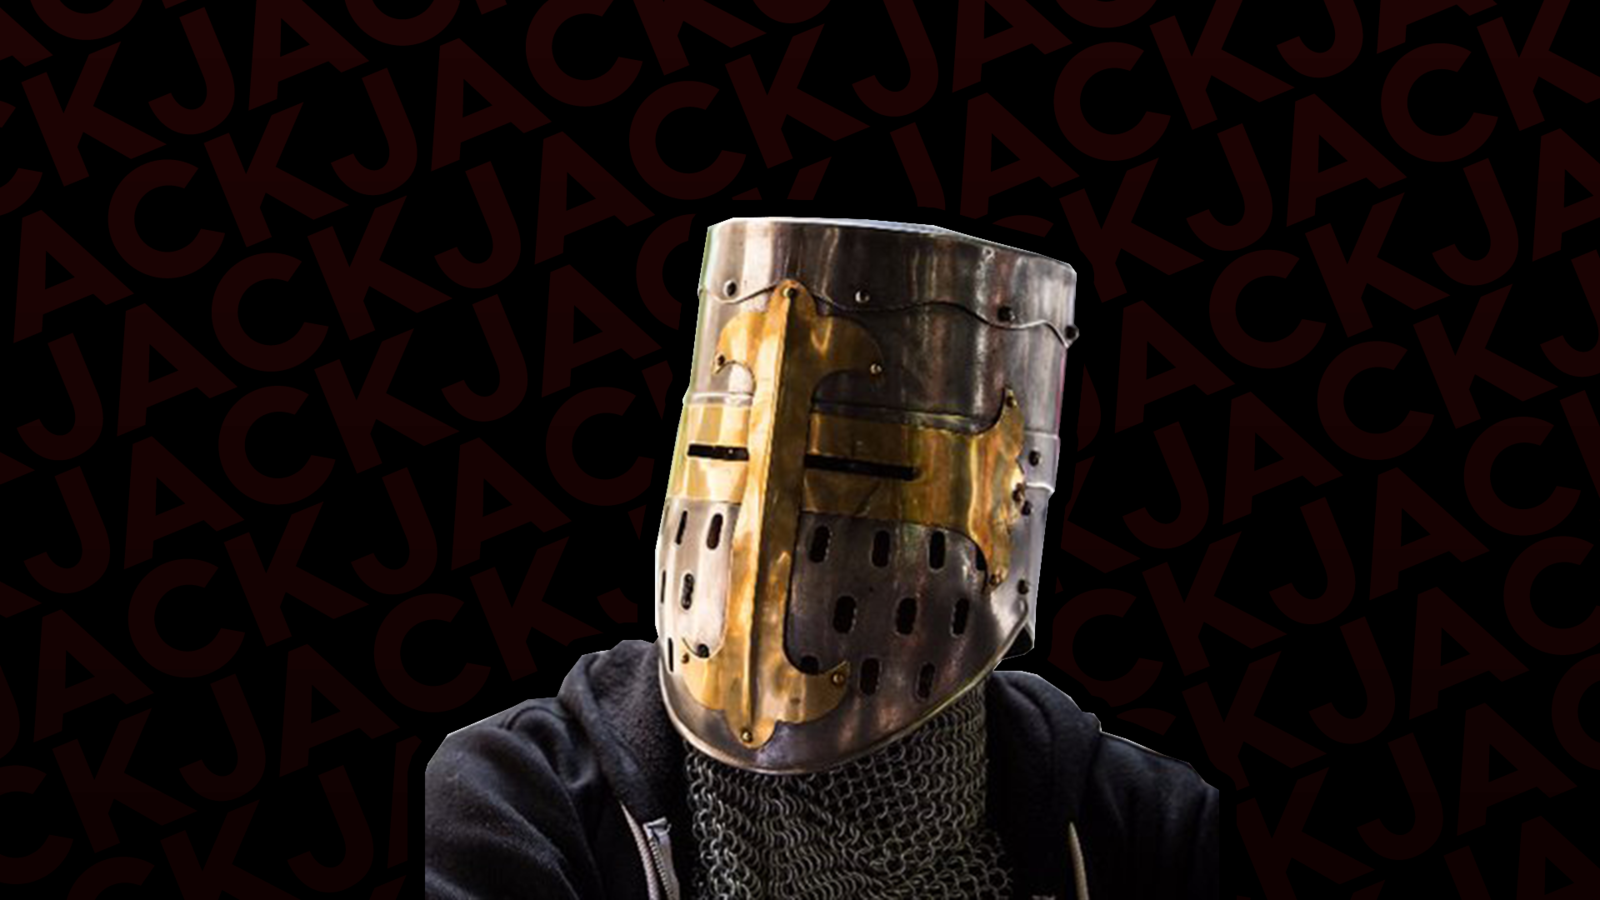 93: With Swaggersouls